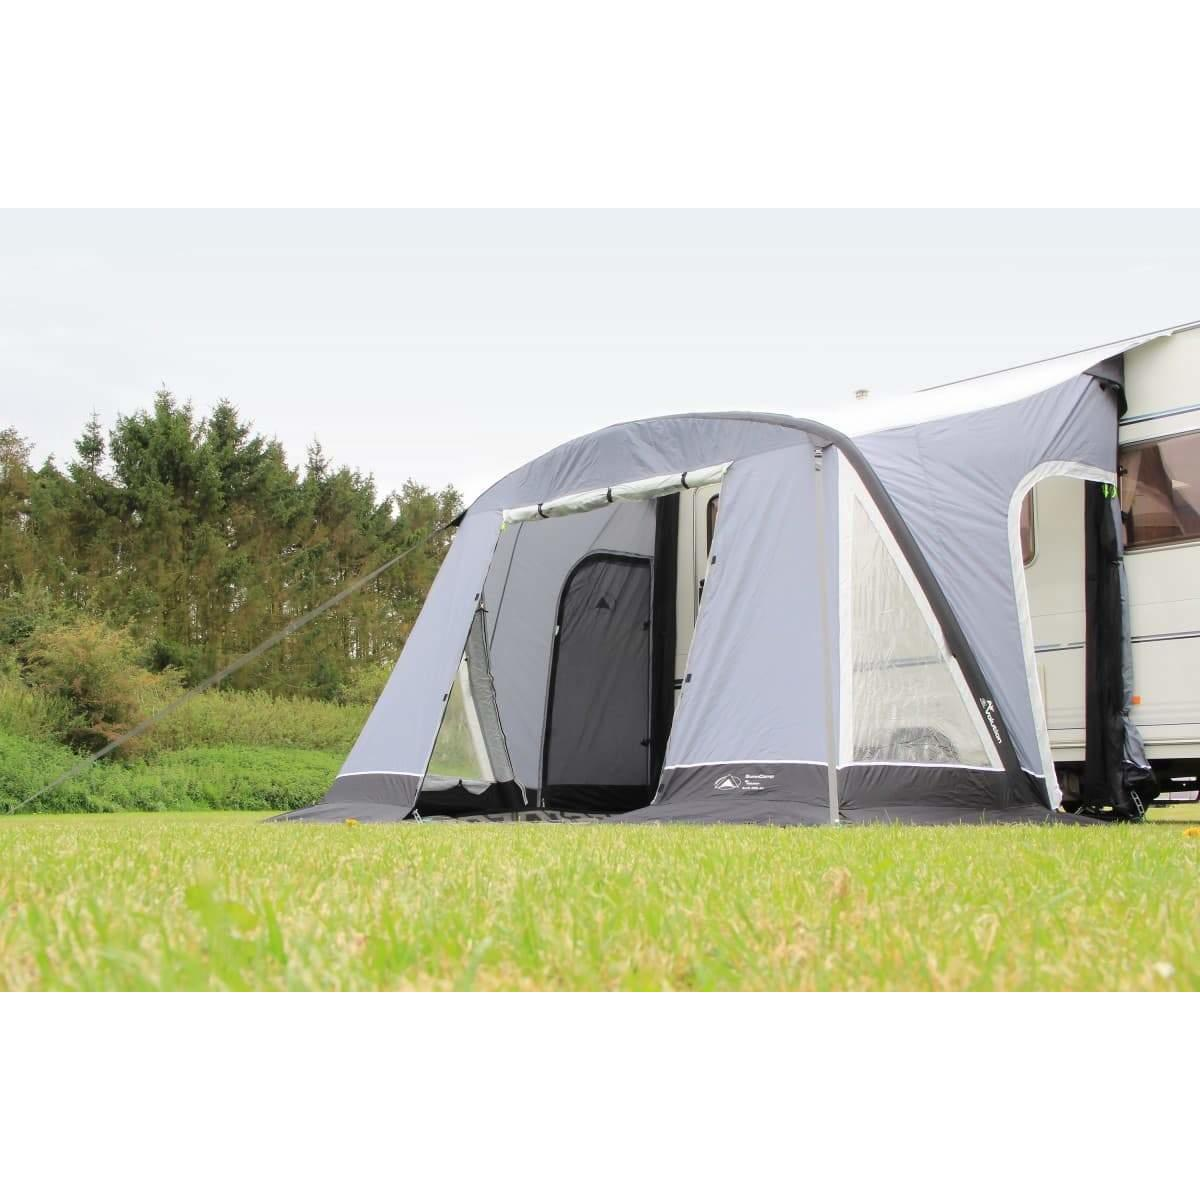 Sunncamp Swift Air 325 Air Inflatable Caravan Awning